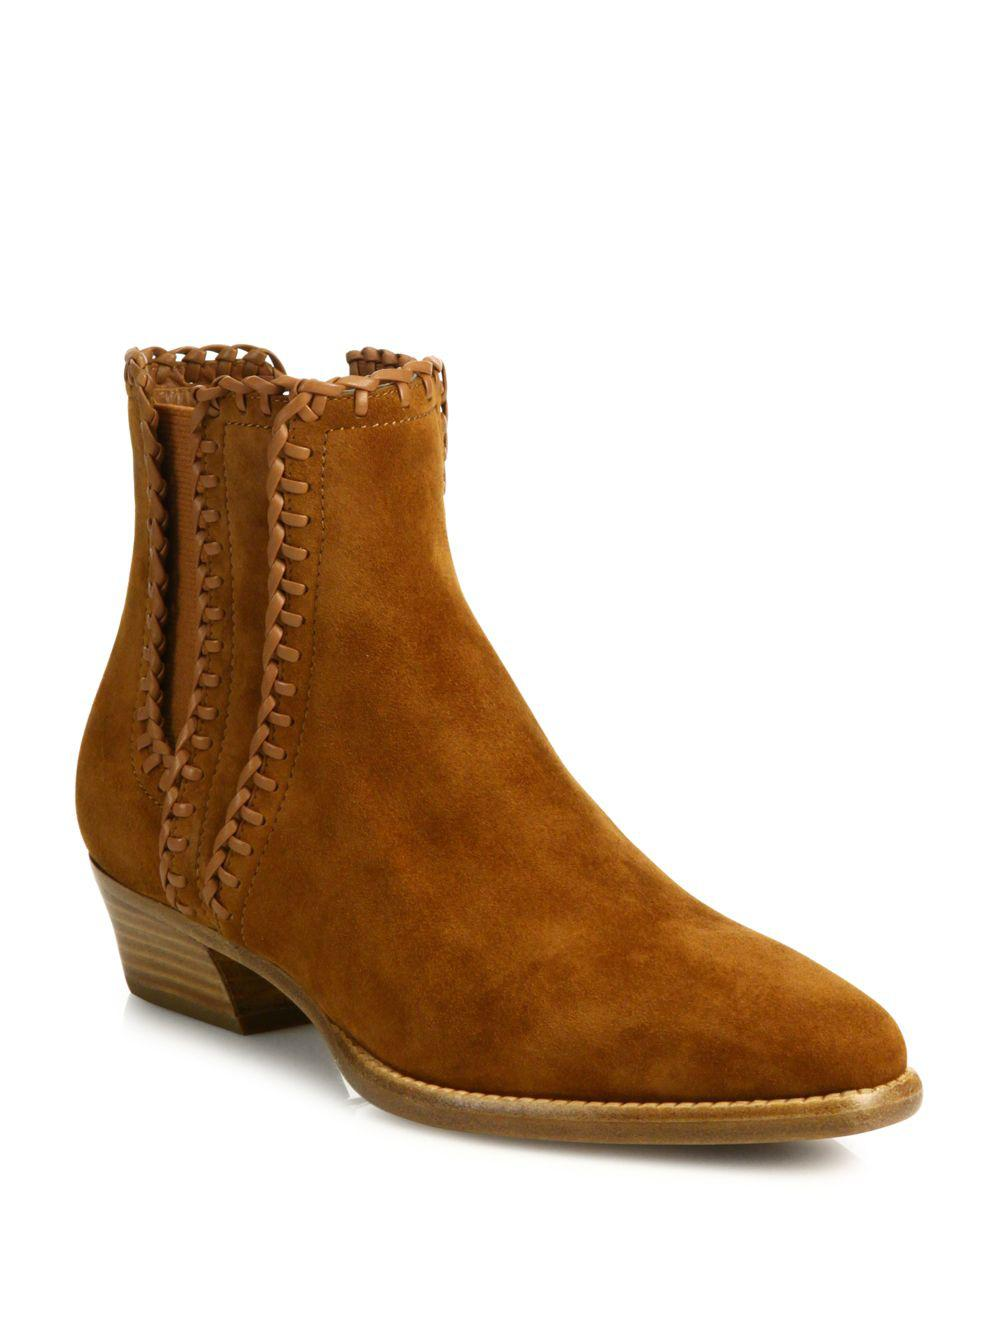 f0cd923e0af Lyst - Michael Kors Presley Whipstitched Suede Booties in Brown